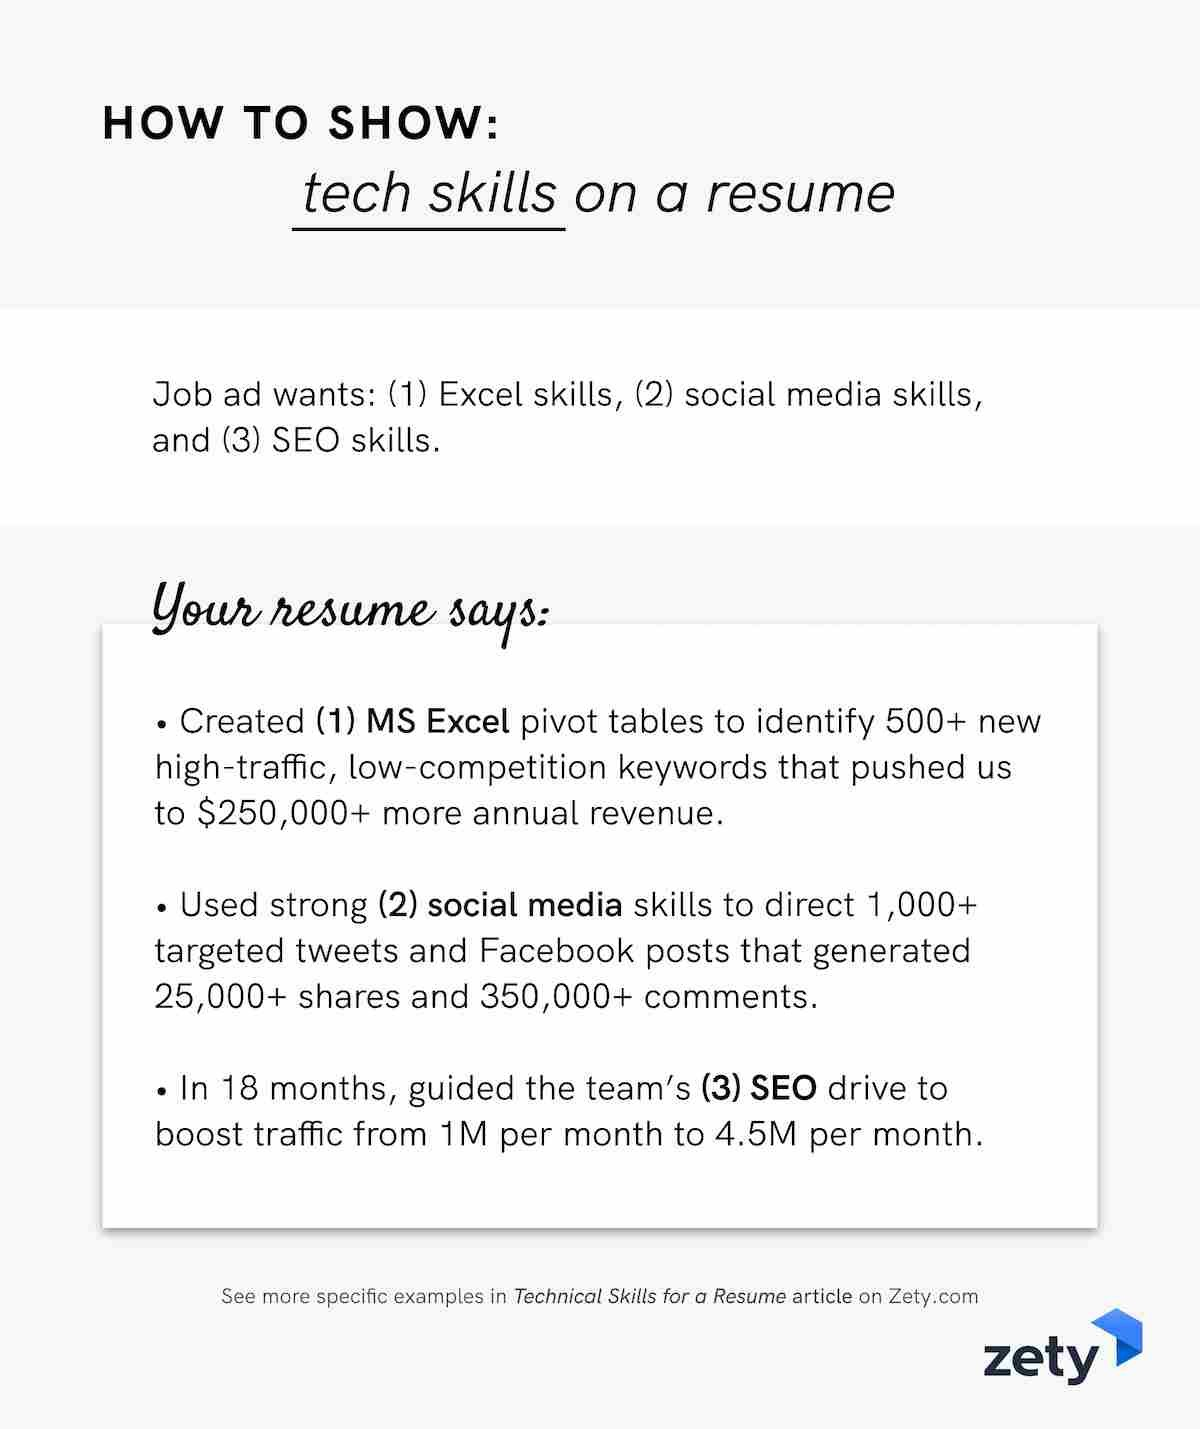 technical skills for resume with examples common computer to show tech on plumbing Resume Common Computer Skills For Resume